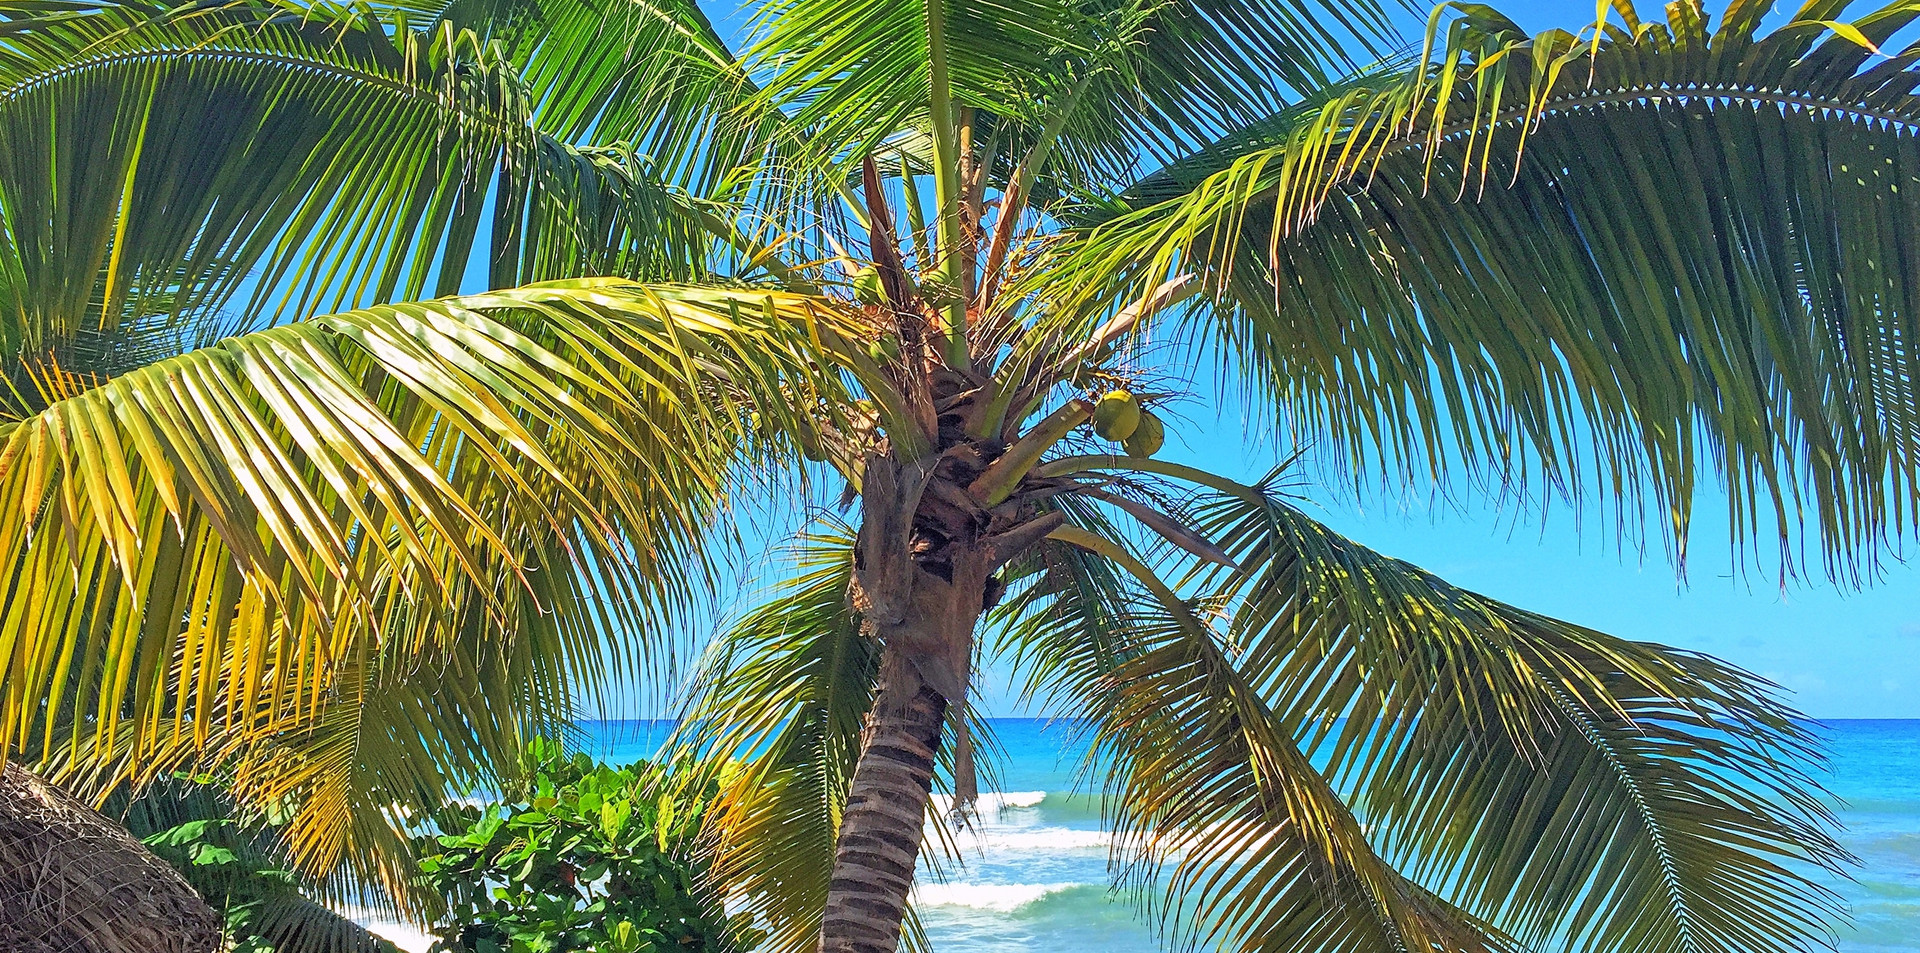 Welcome to Palm Trees and Blue Ocean